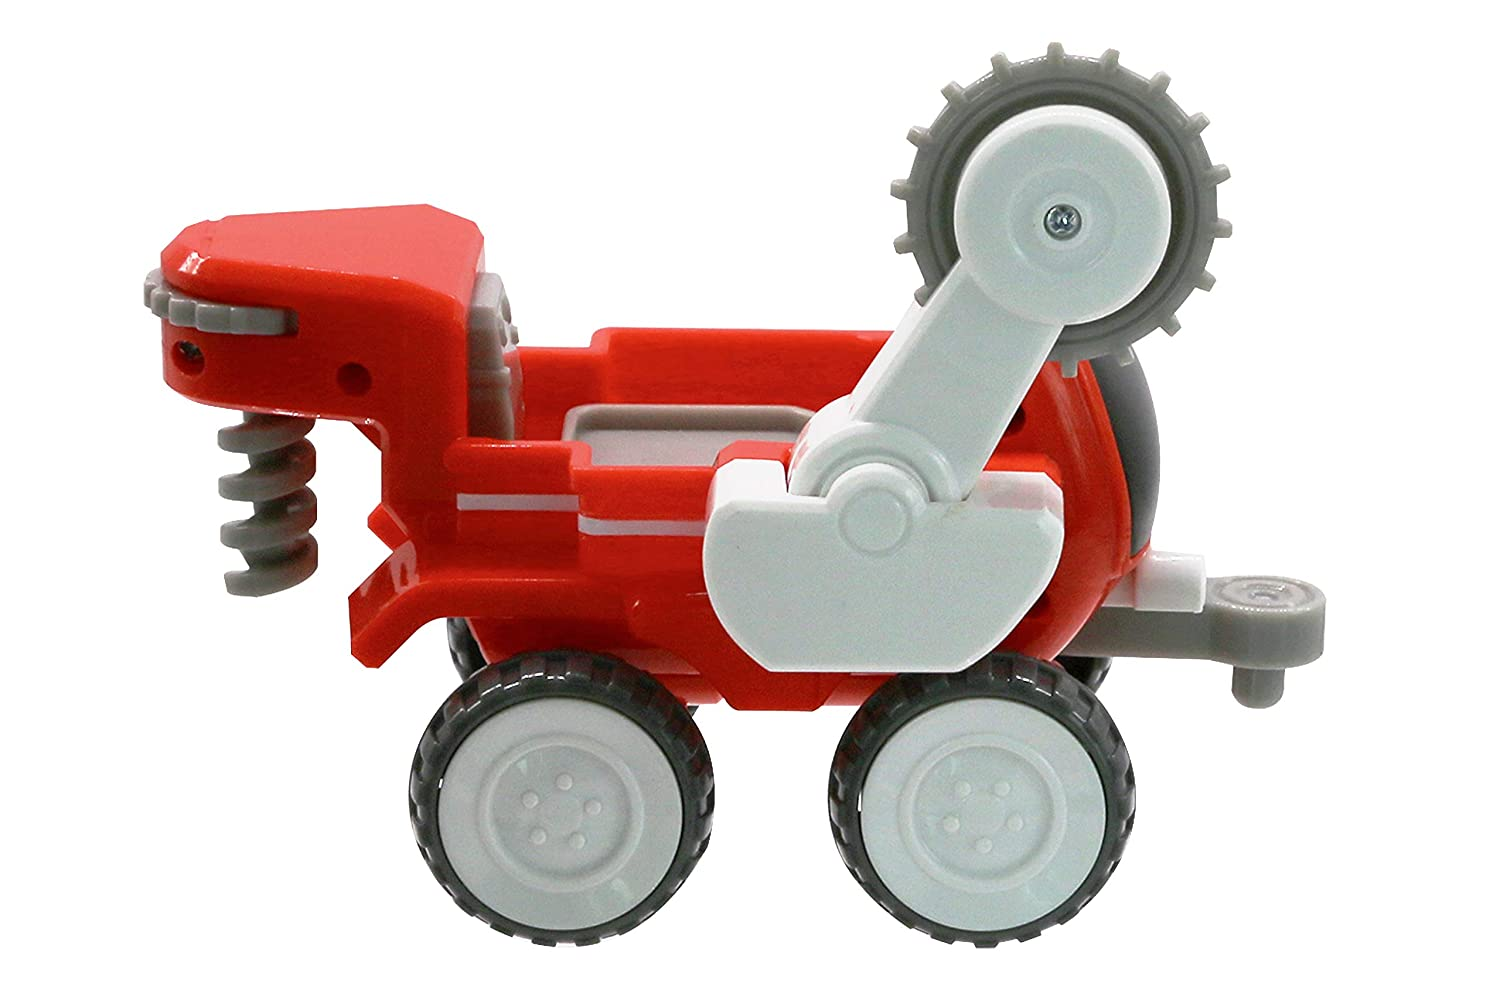 Transform-A-Bot Jett Toy Figure US730842 Jetts Moon Rover Vehicle Super Wings